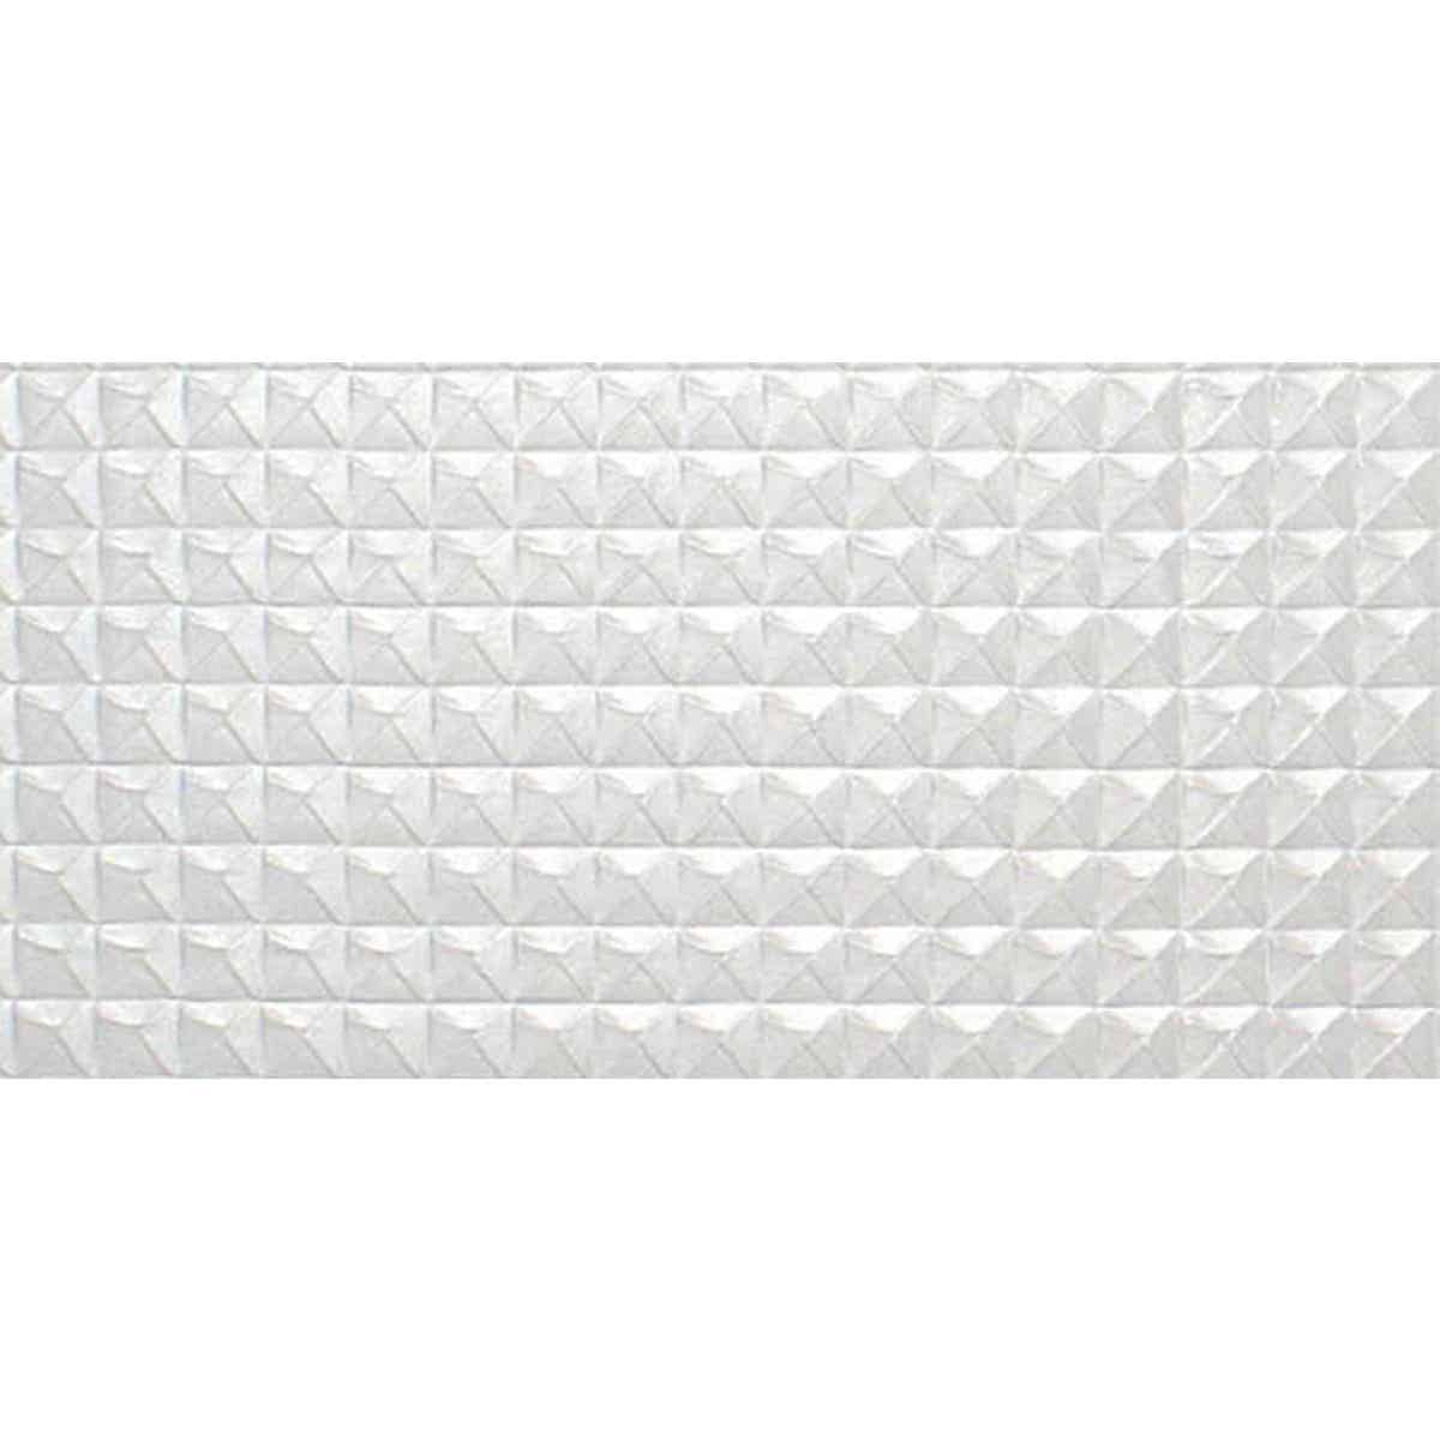 Parkland Performance SpectraTile Millennium 2 Ft. x 4 Ft. White PVC Diamond Pyramid Suspended Ceiling Tile  Image 3